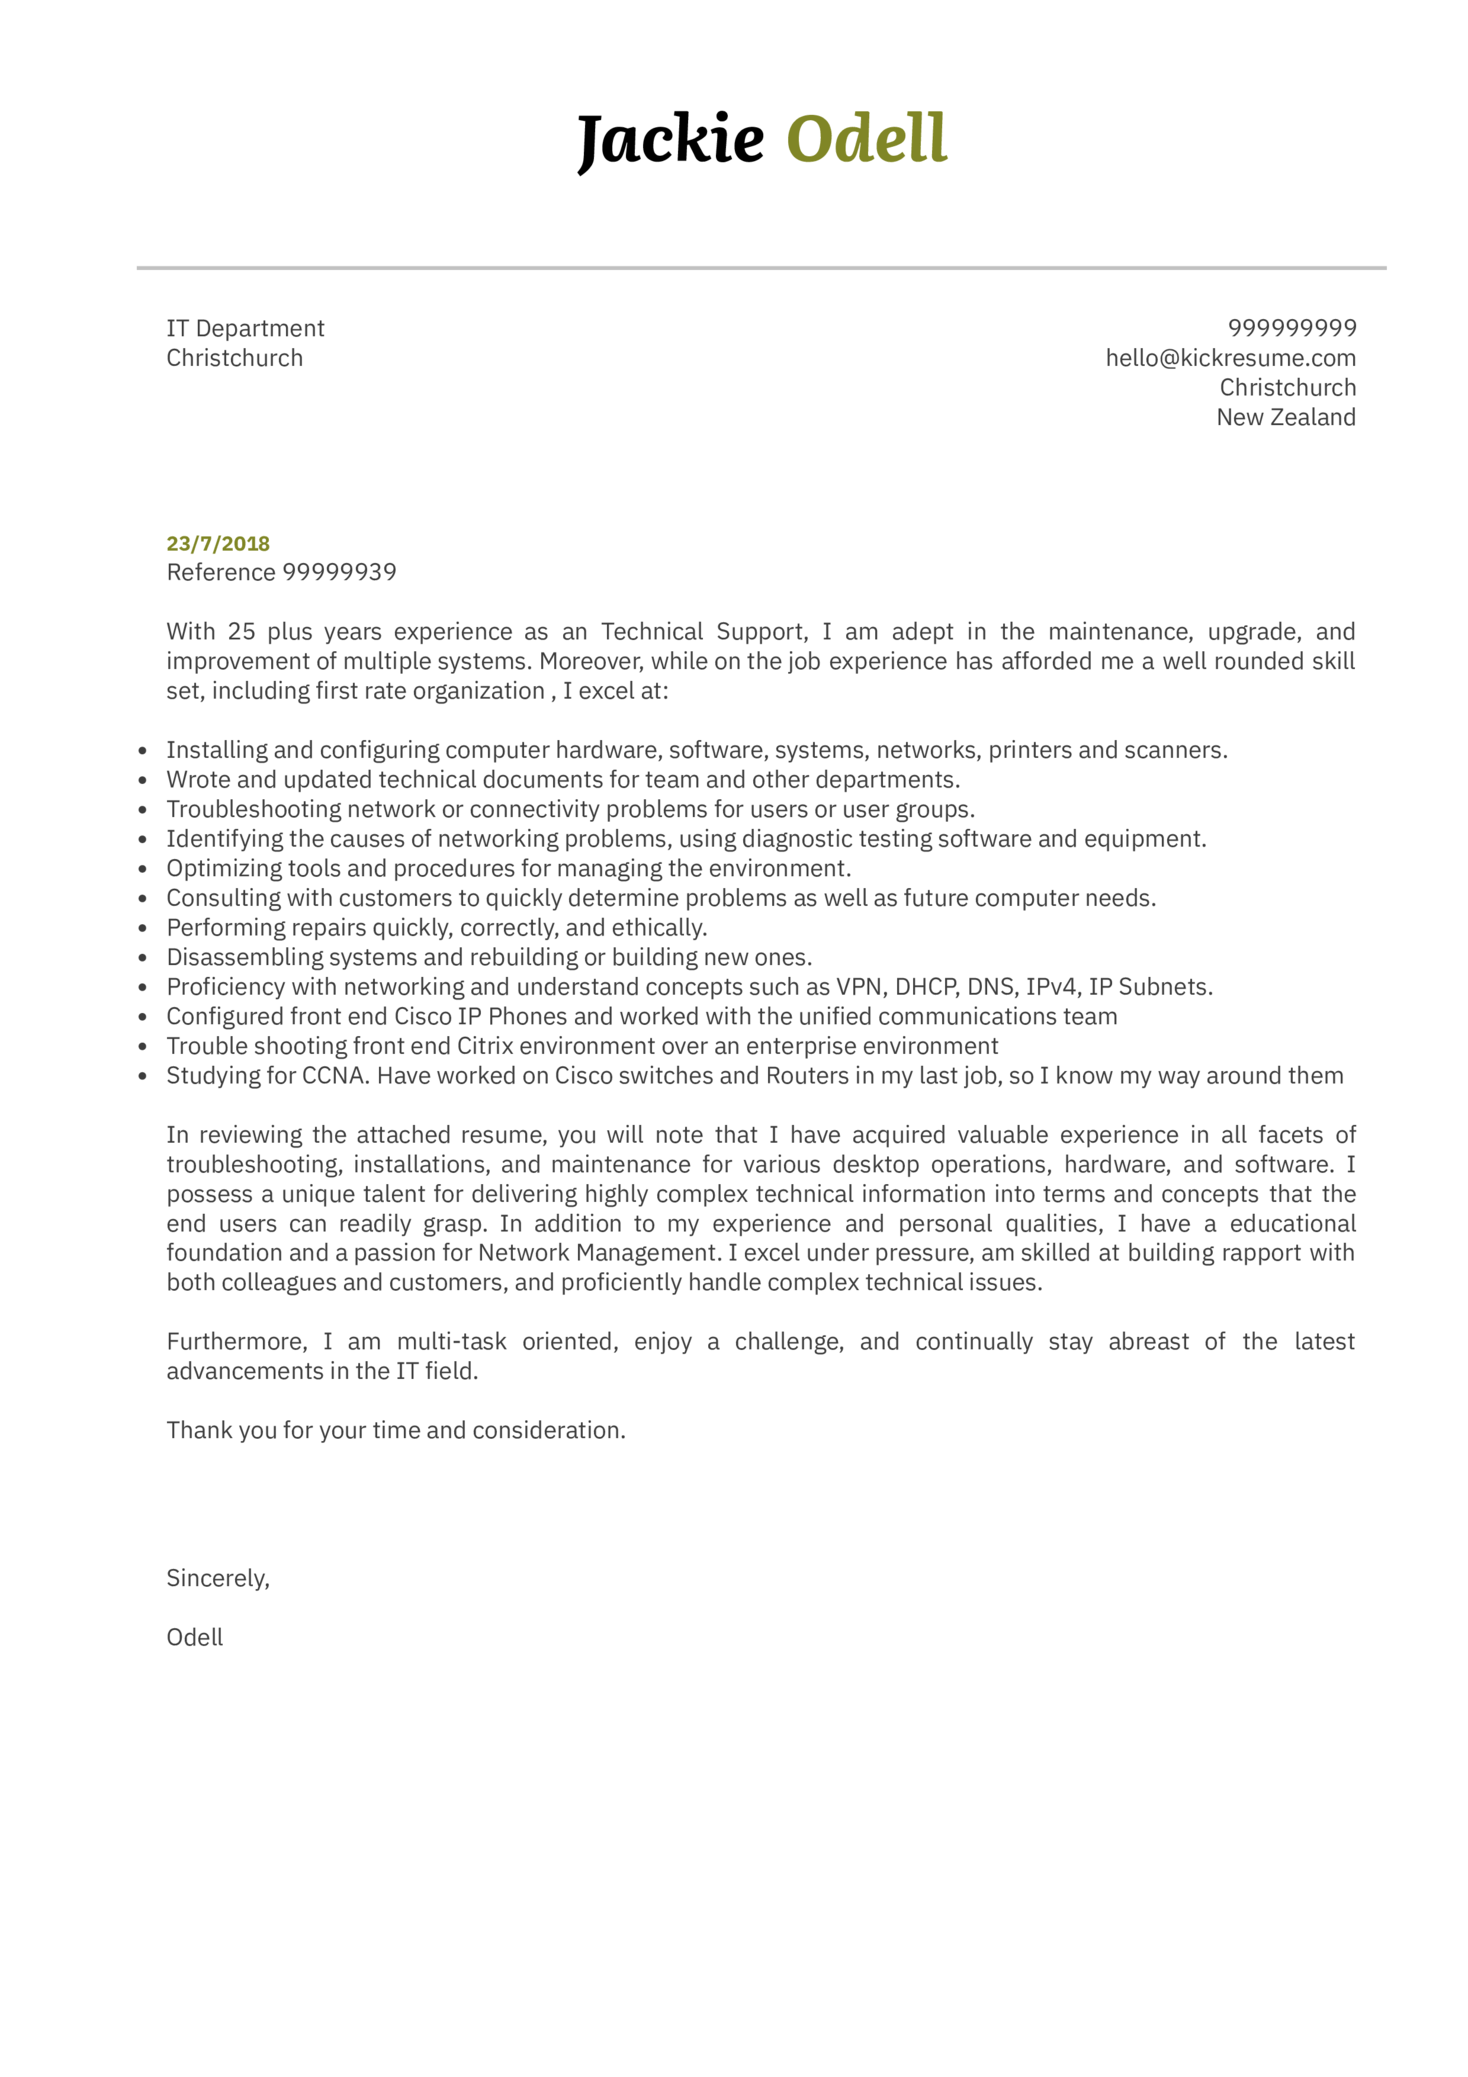 Sr. Technical support specialist cover letter